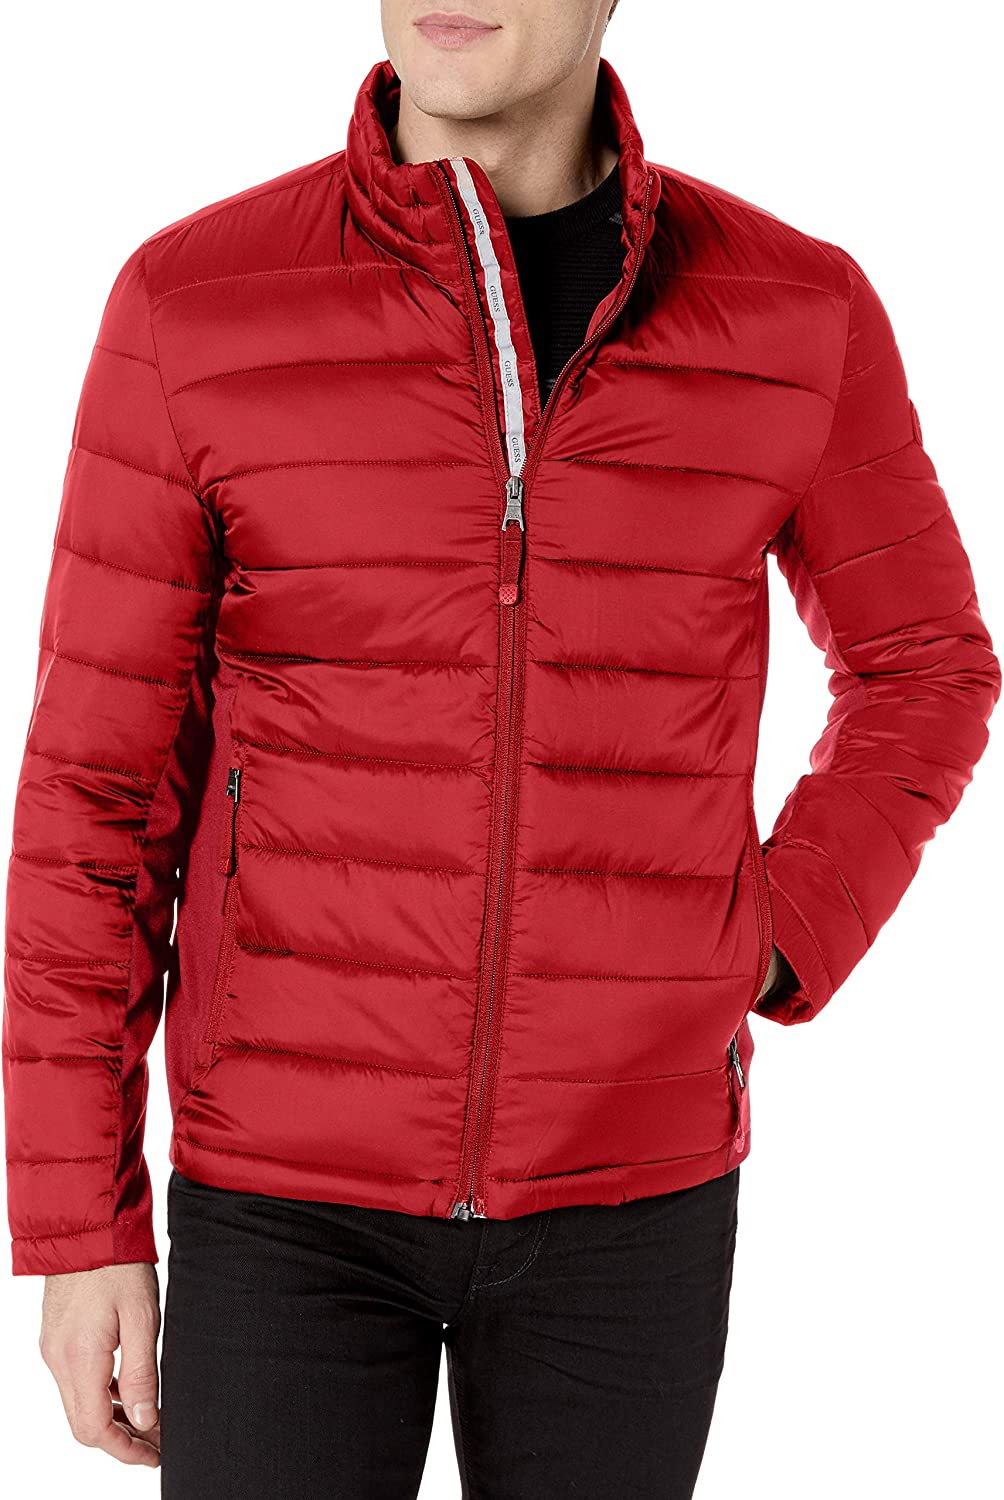 Guess Mens Puffer Bubble Jacket Sizes XS S M L XL XXL All Sizes All Colors BNWT